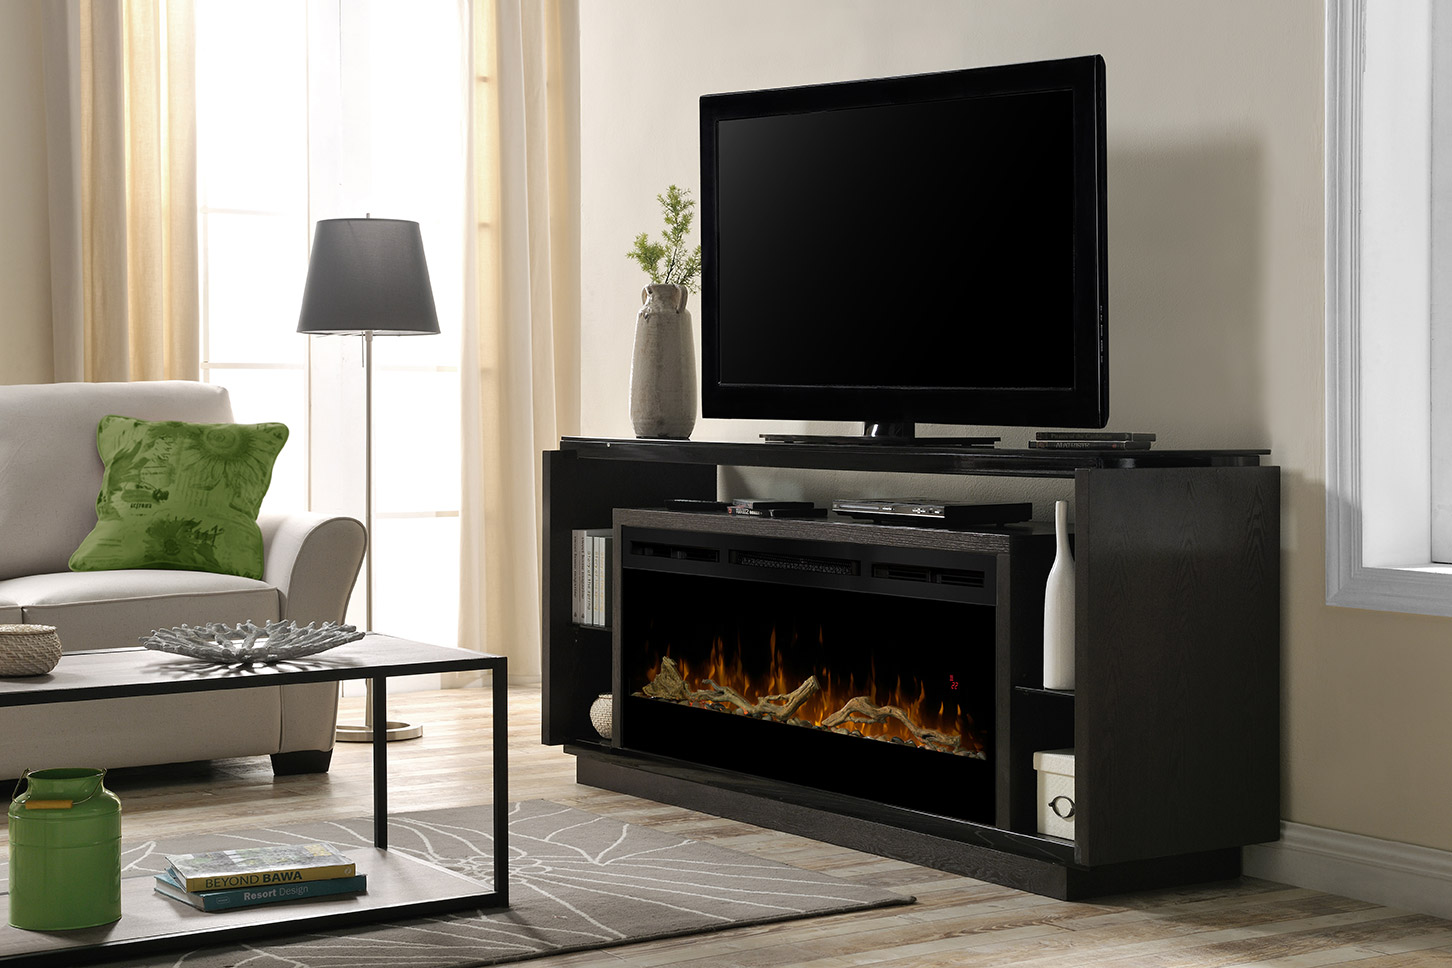 Dimplex Electric Fireplace- Media Console- David